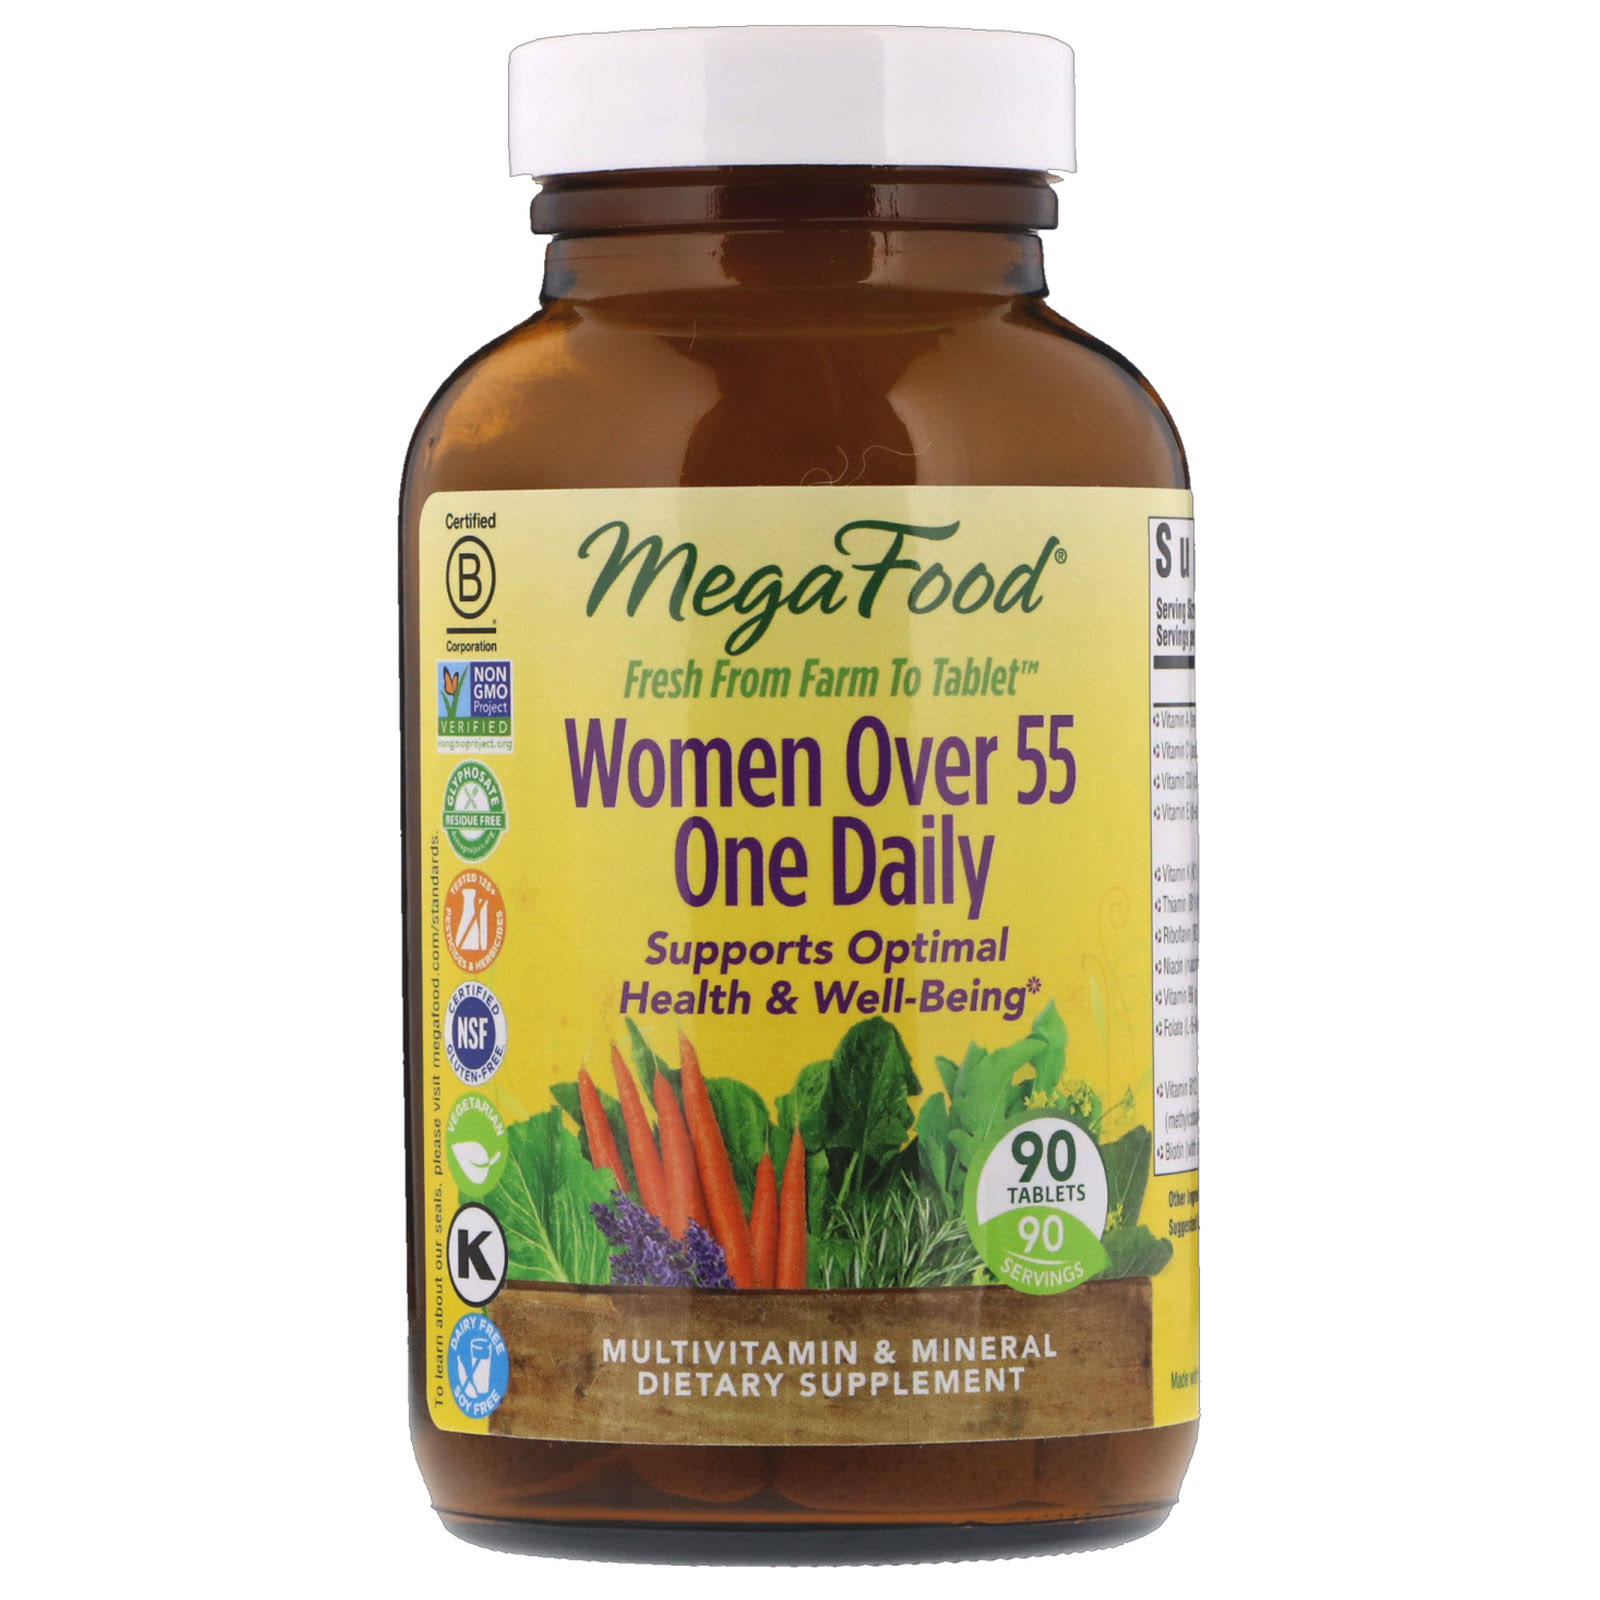 MegaFood - Women Over 55 One Daily - 90 Tablets